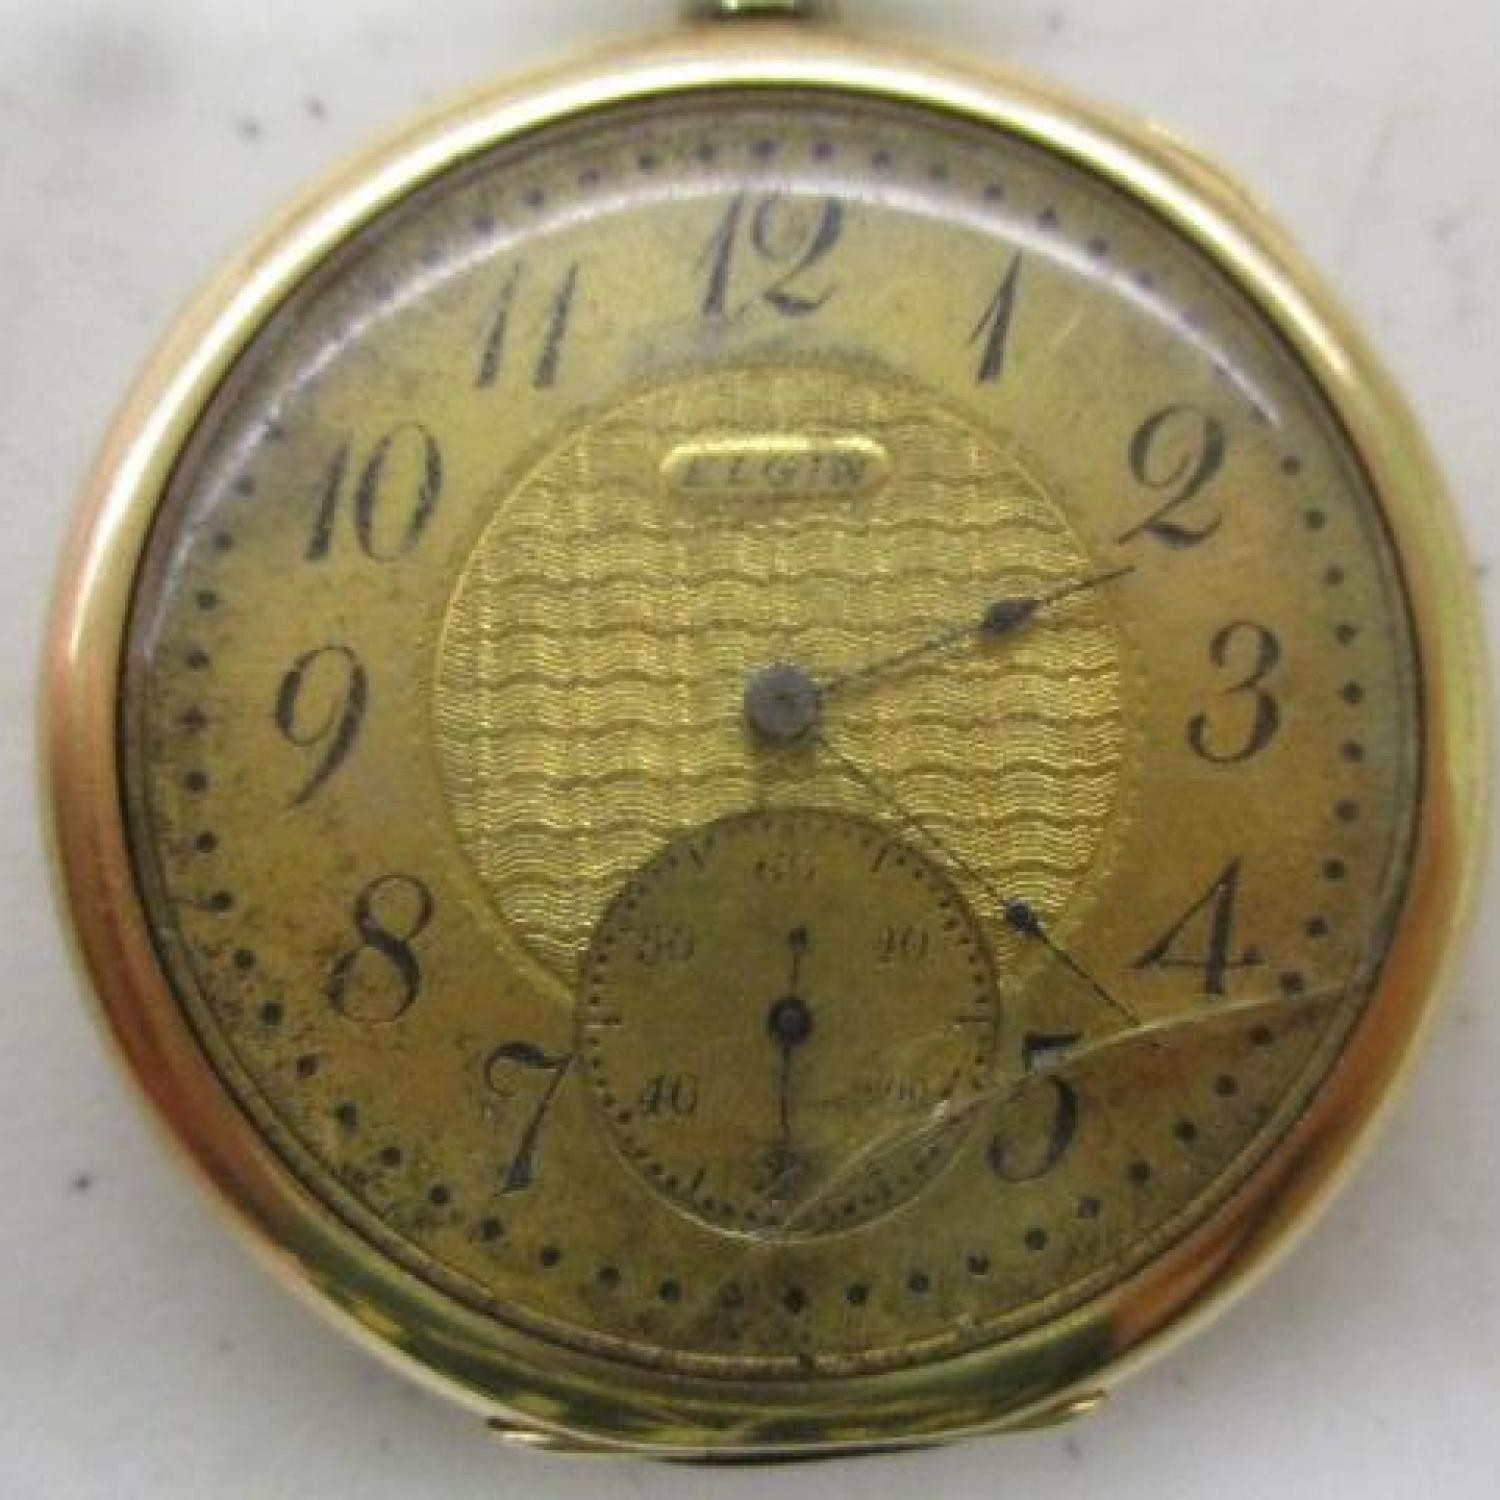 Image of Elgin 356 #13117411 Dial